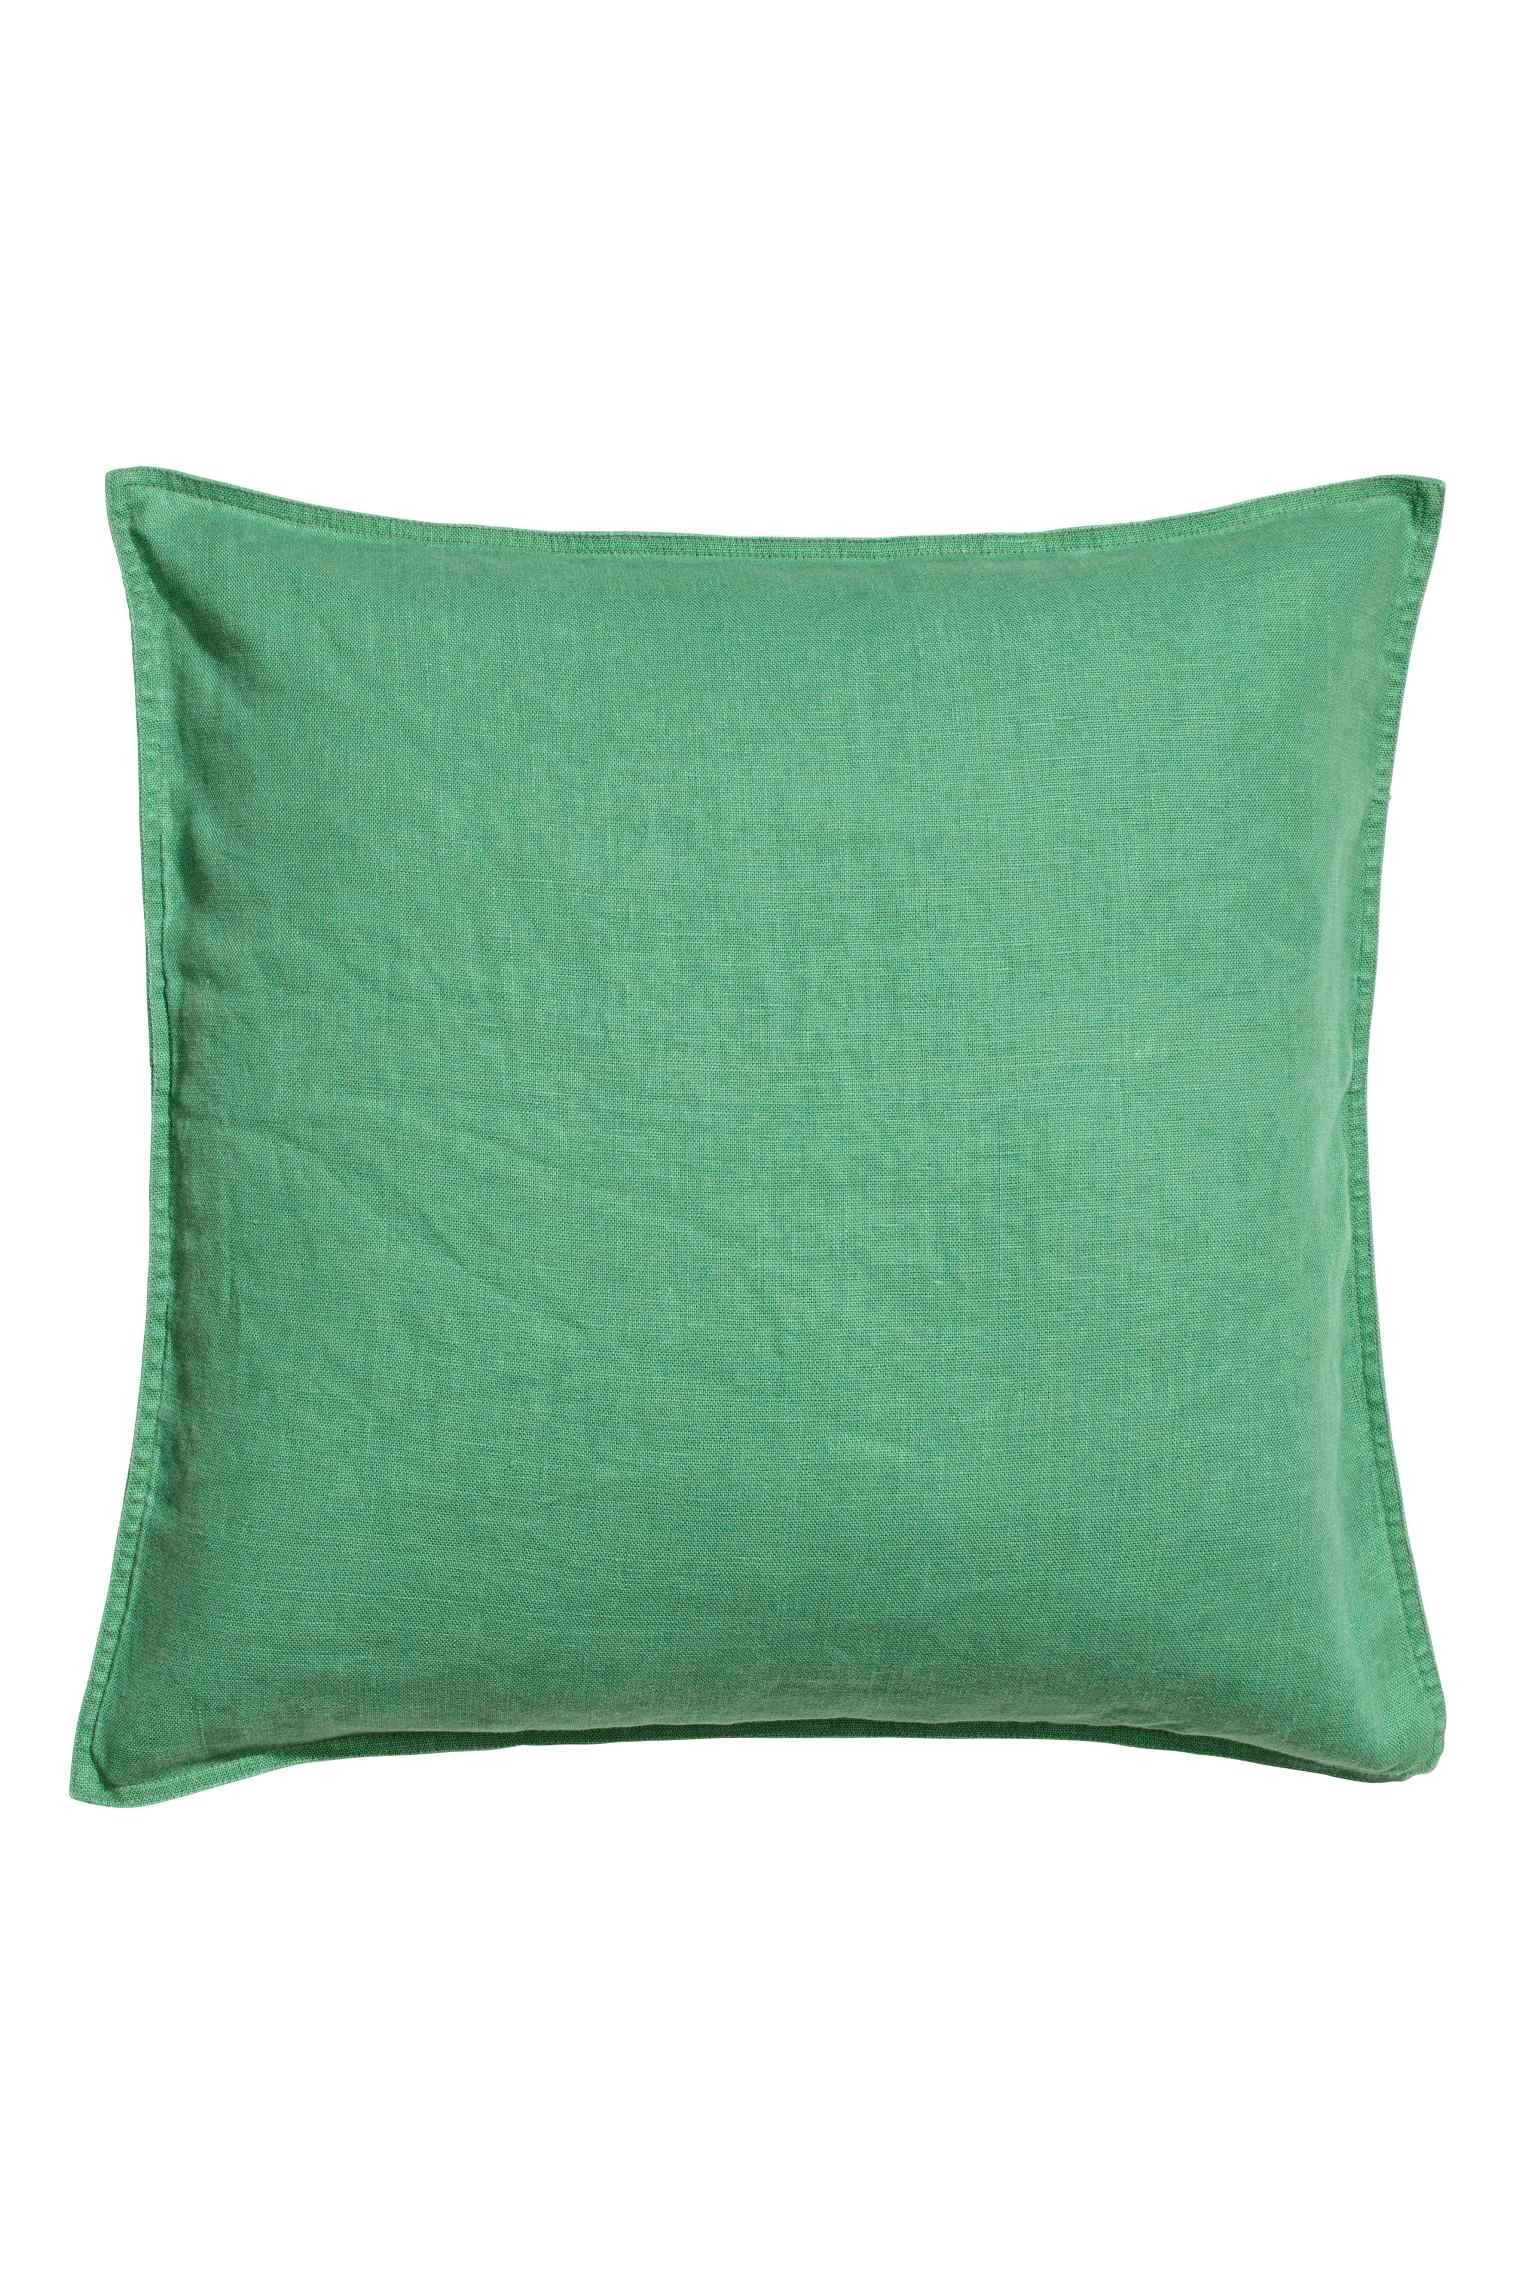 Linen cushion cover  20in., $15